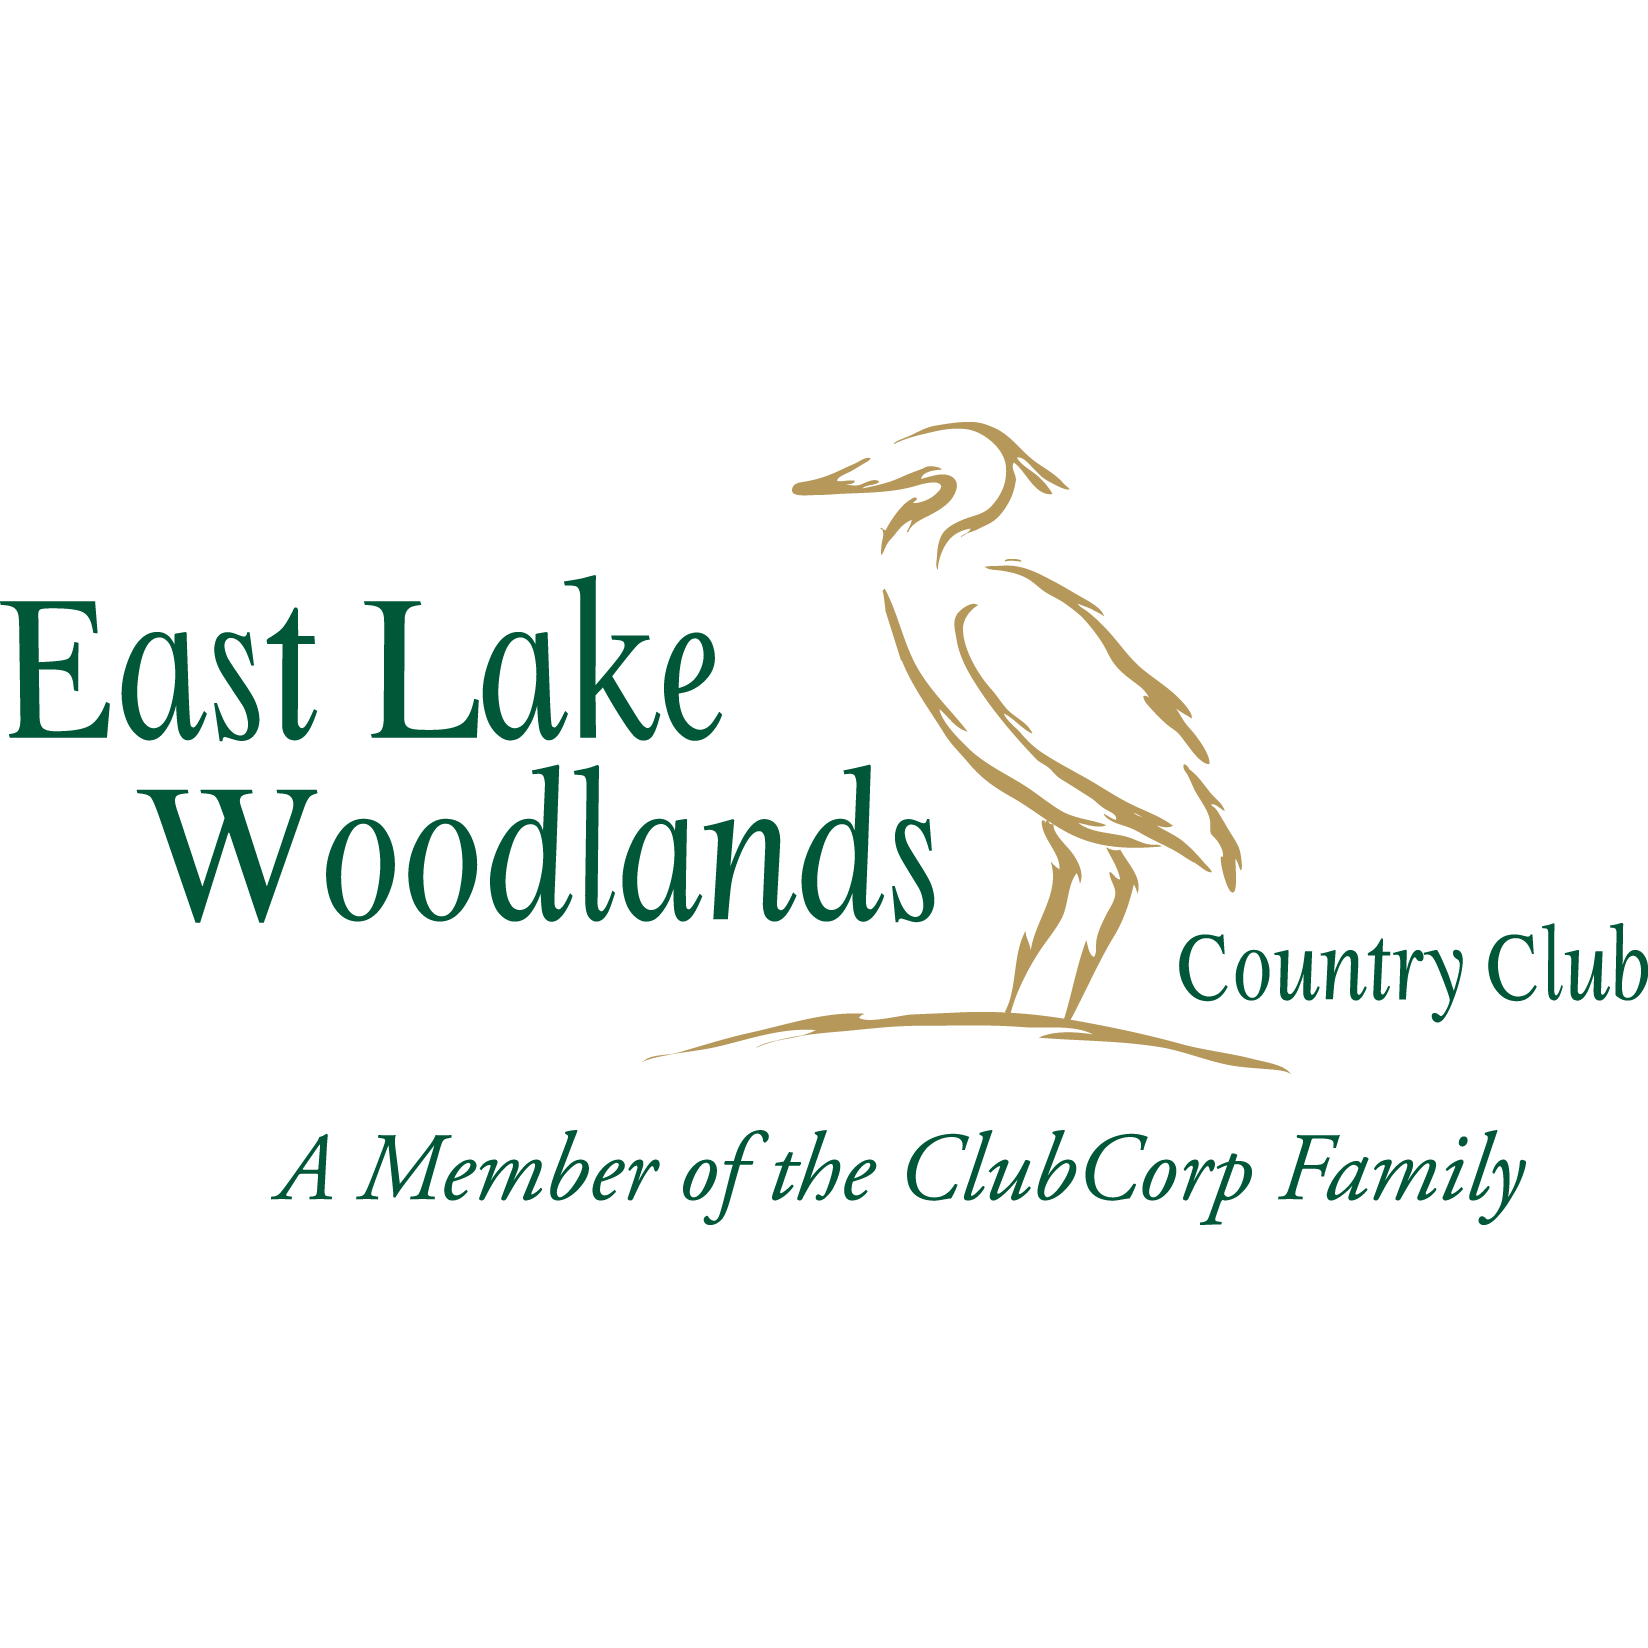 East Lake Woodlands Country Club